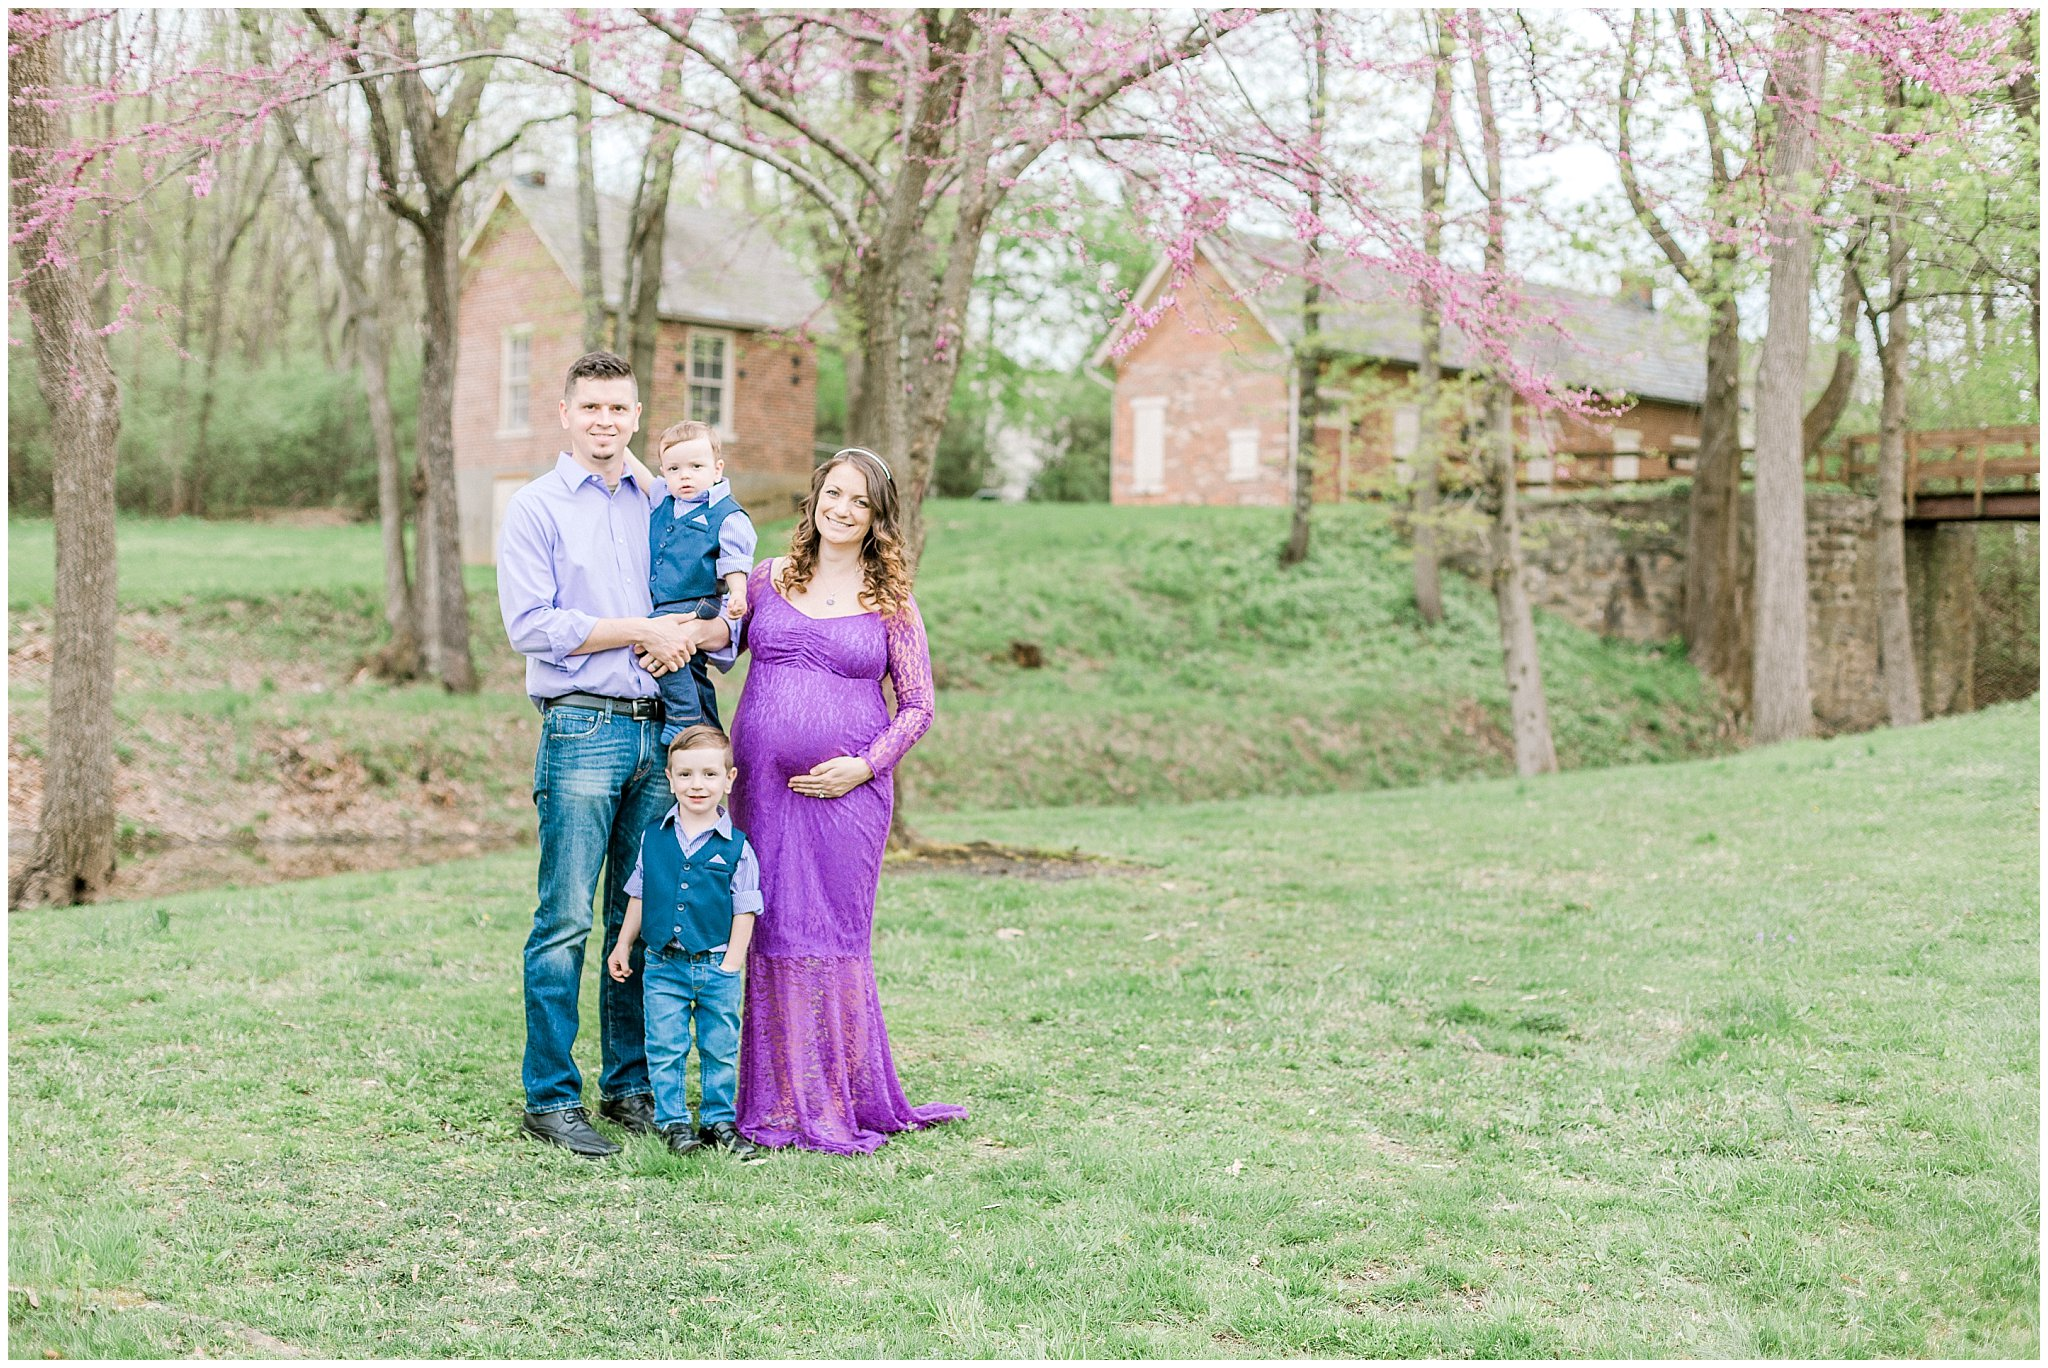 alburtis lockridge blue bonnet purple inspried maternity and family session pennsylvania wedding and lifestyle photographer (2).jpg